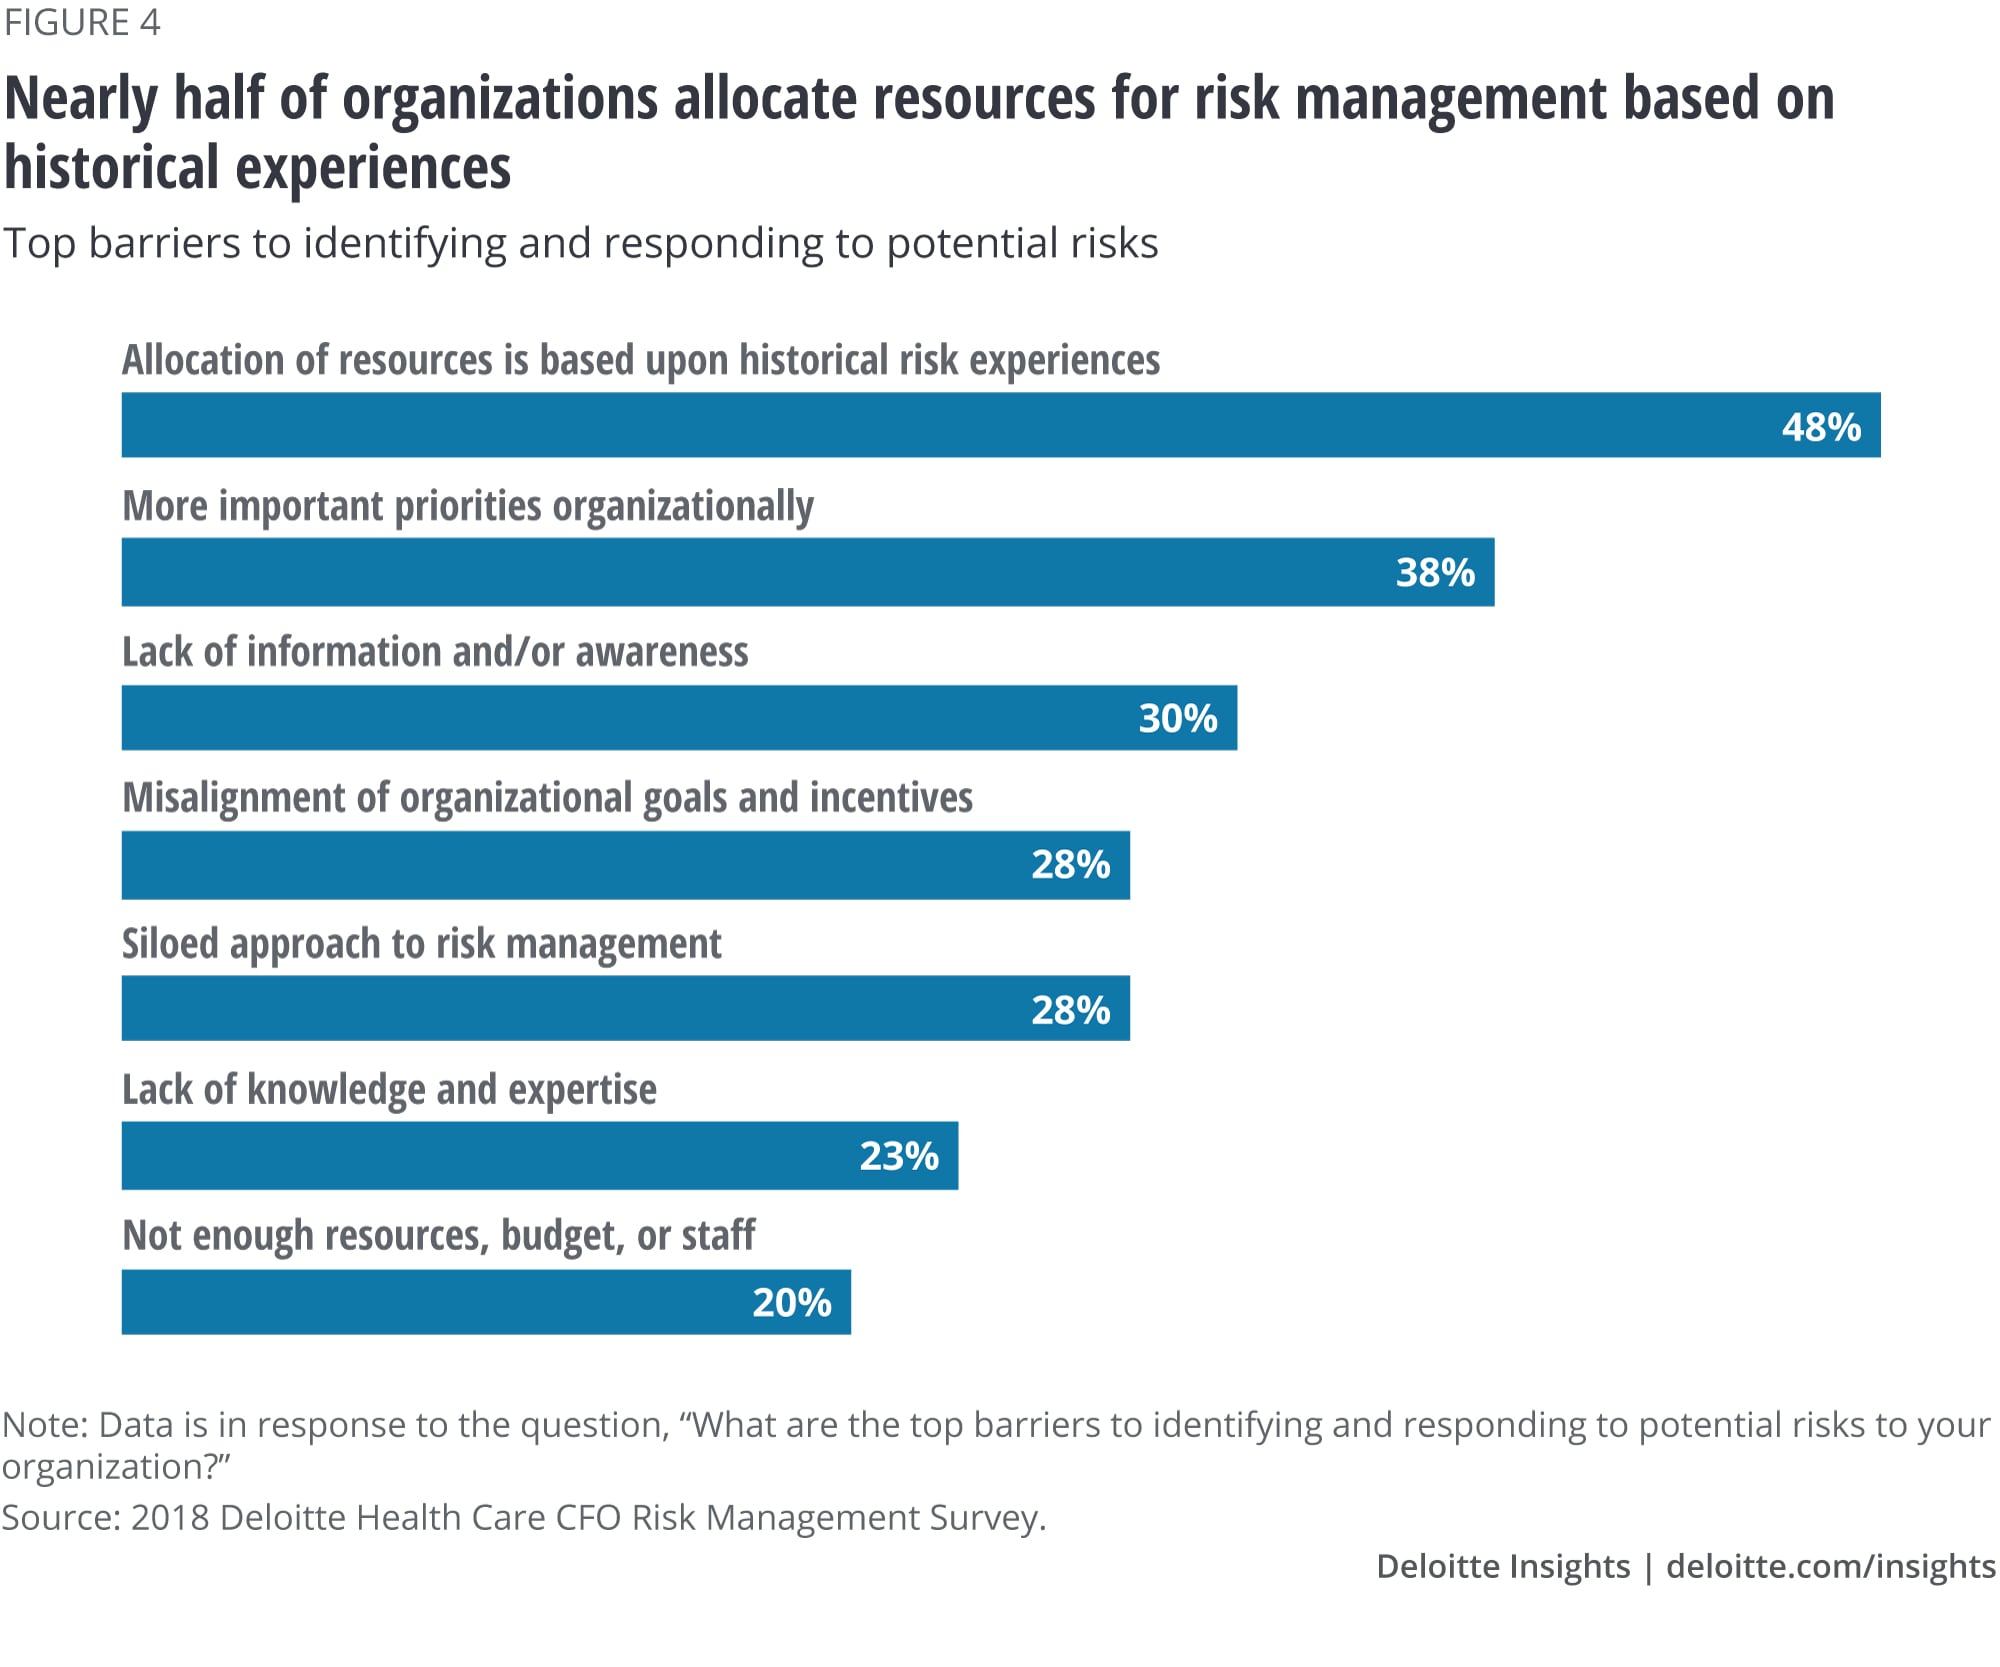 Nearly half of organizations allocate resources for risk management based on historical experiences